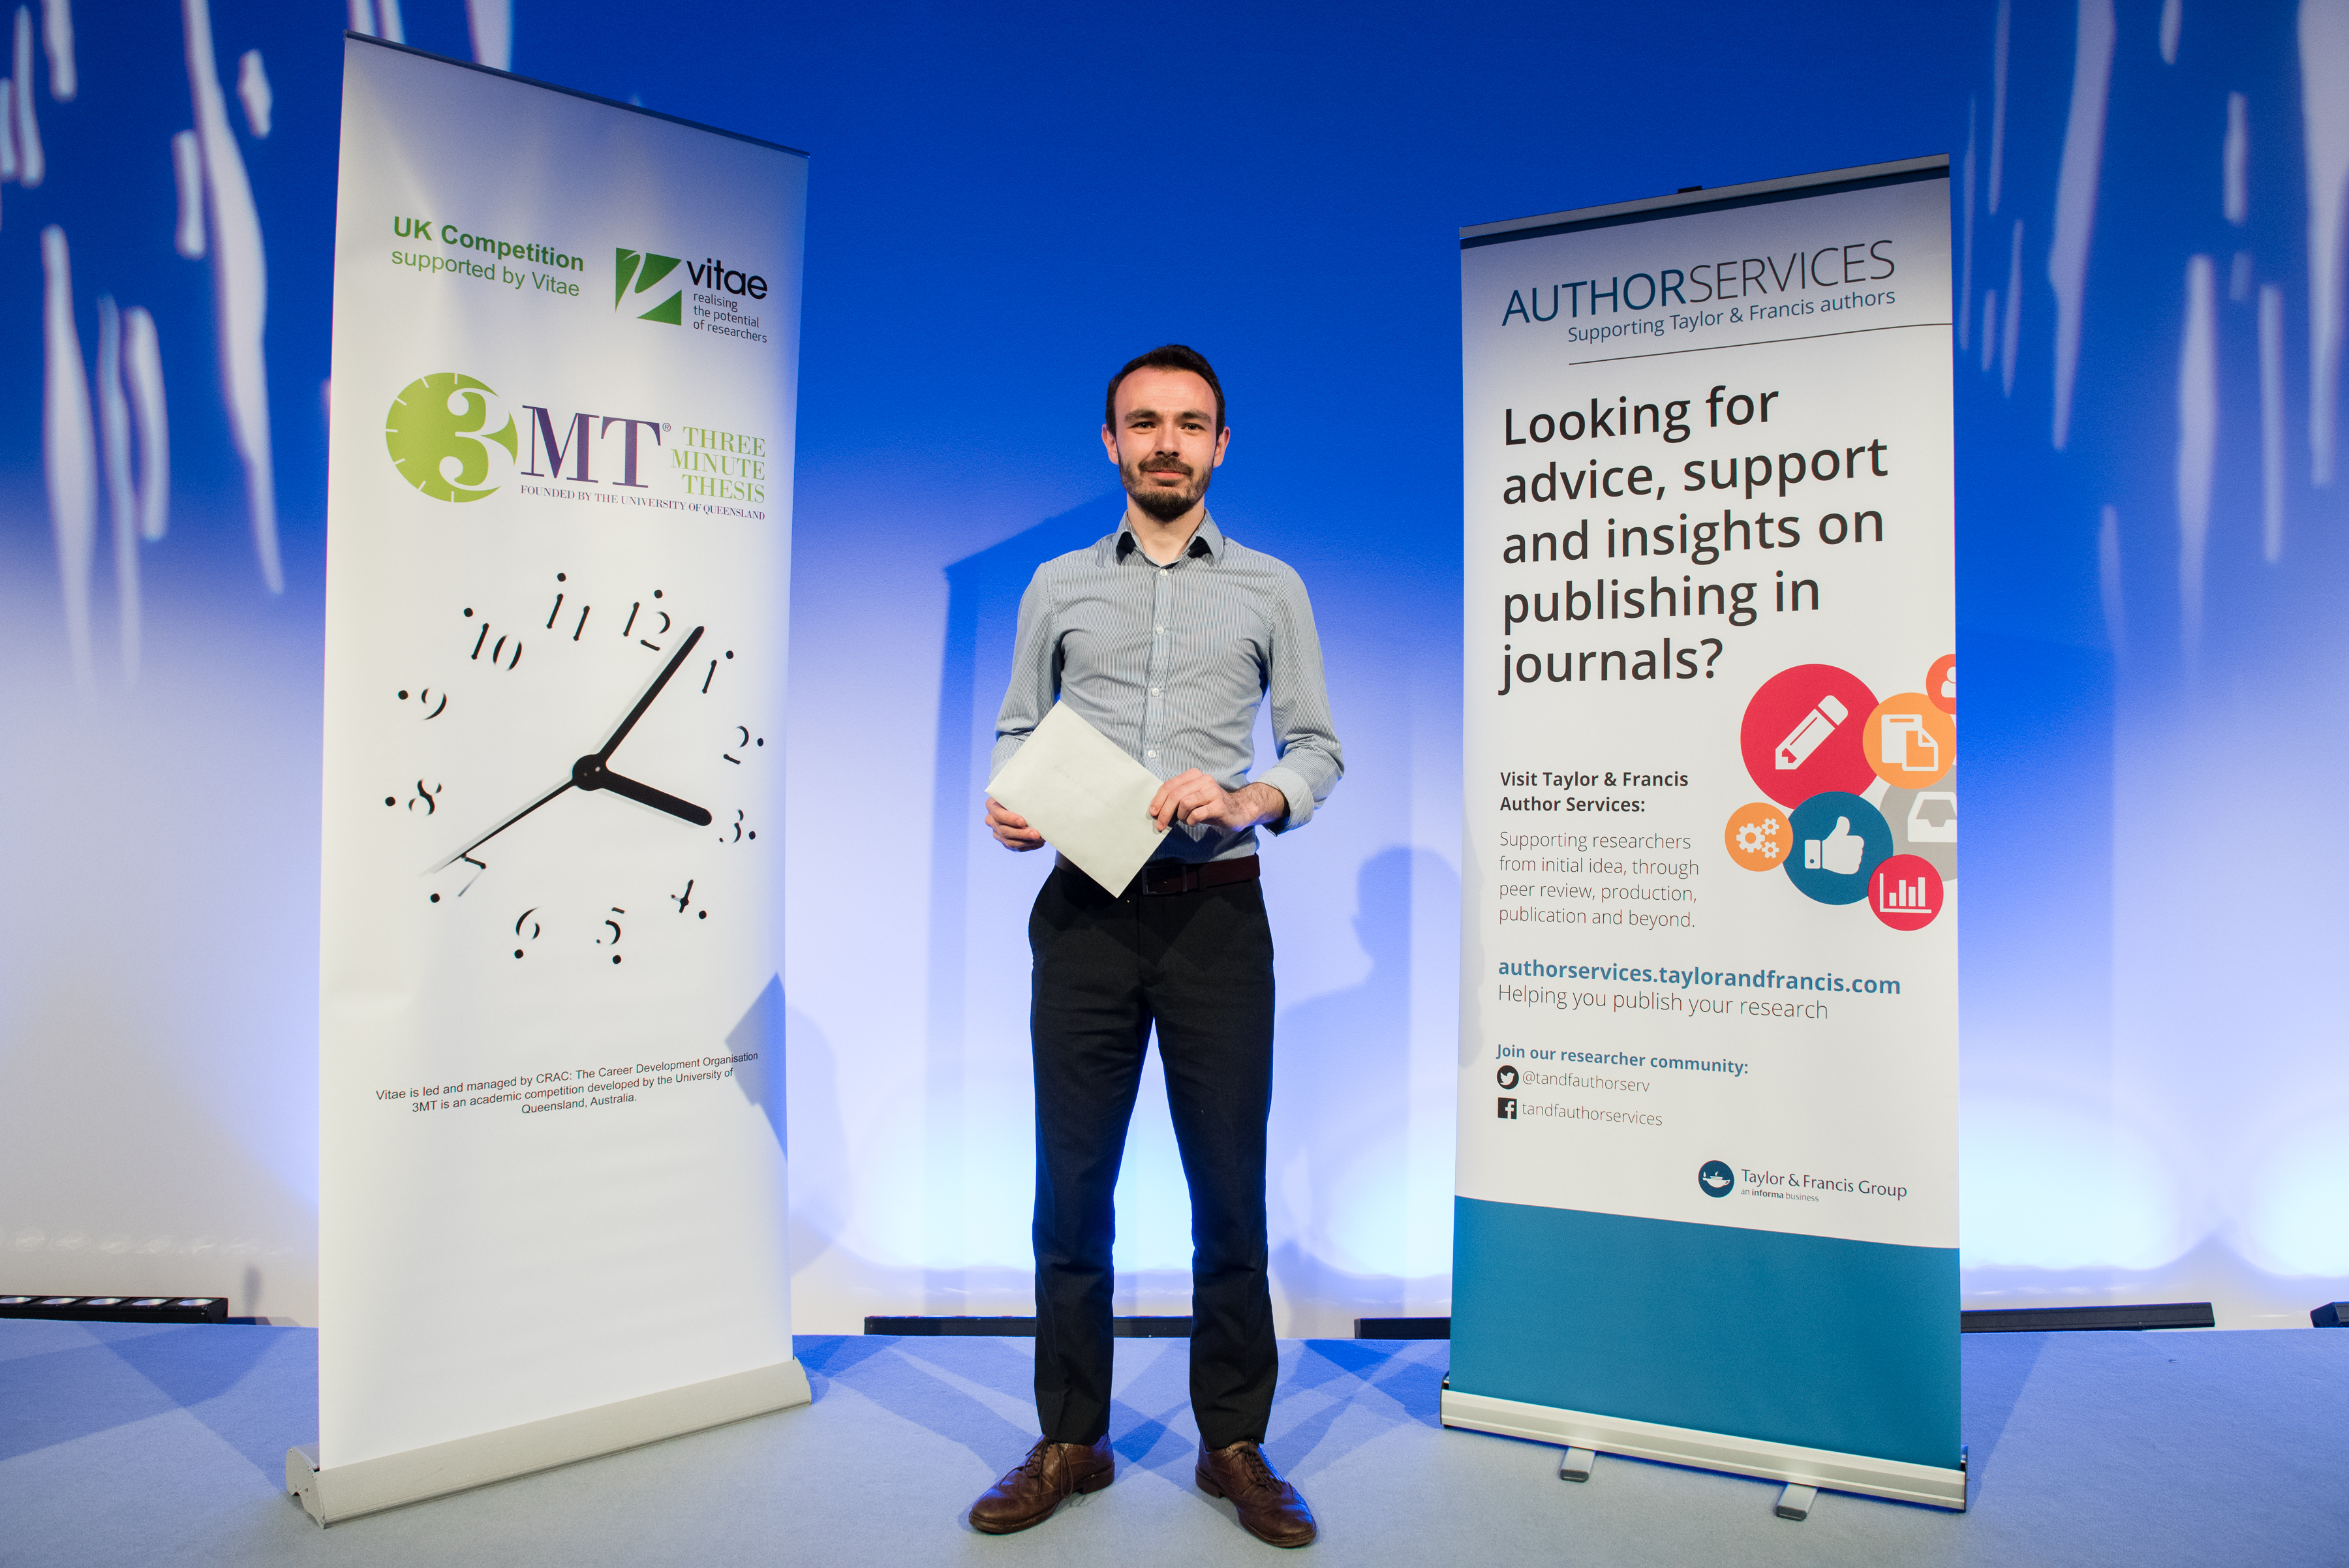 3MT Peoples Choice